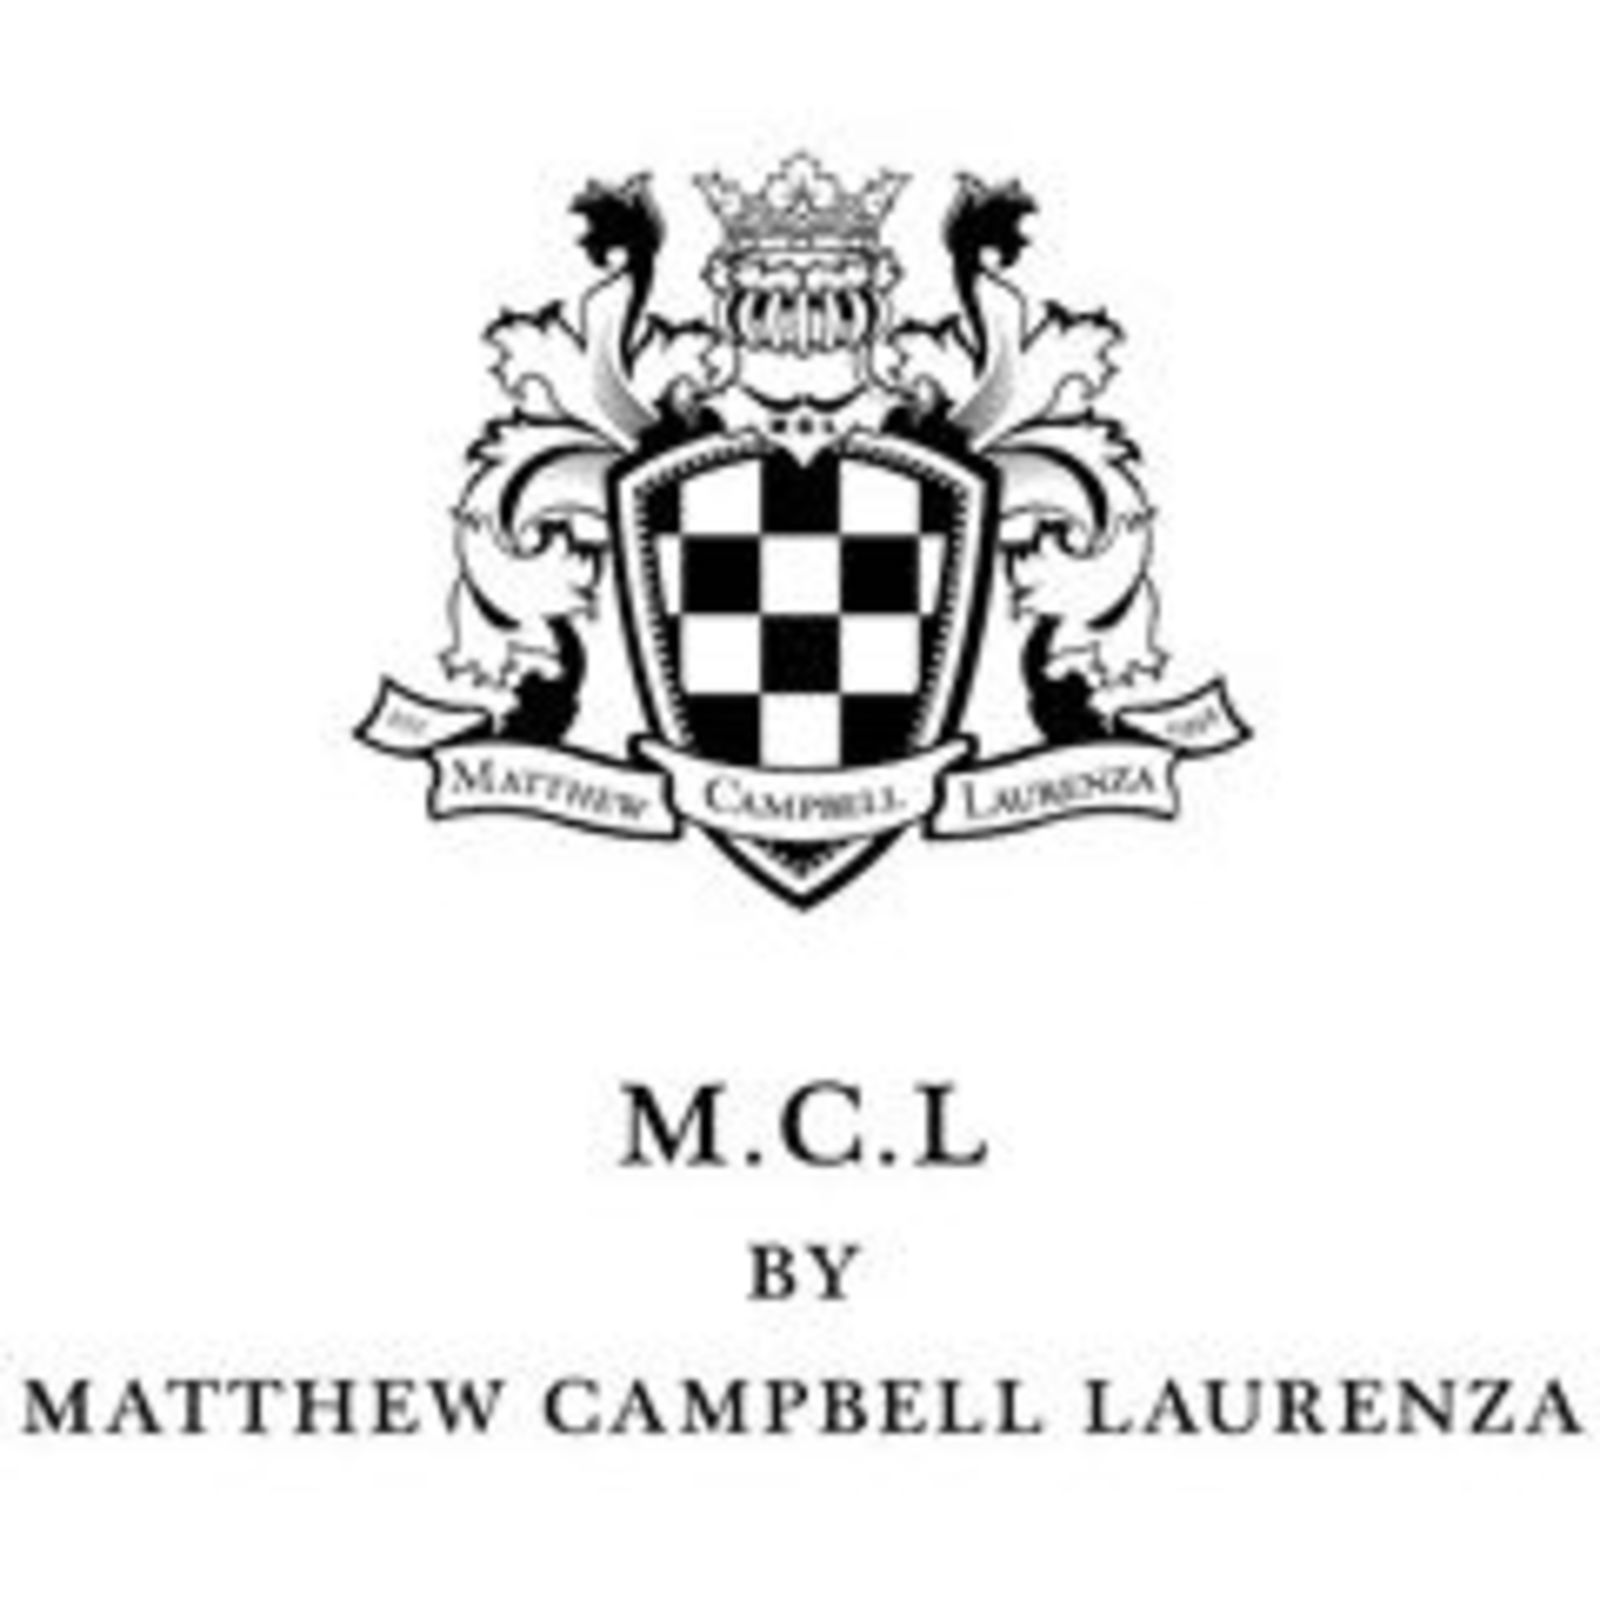 M.C.L. by Matthew Campbell Laurenza